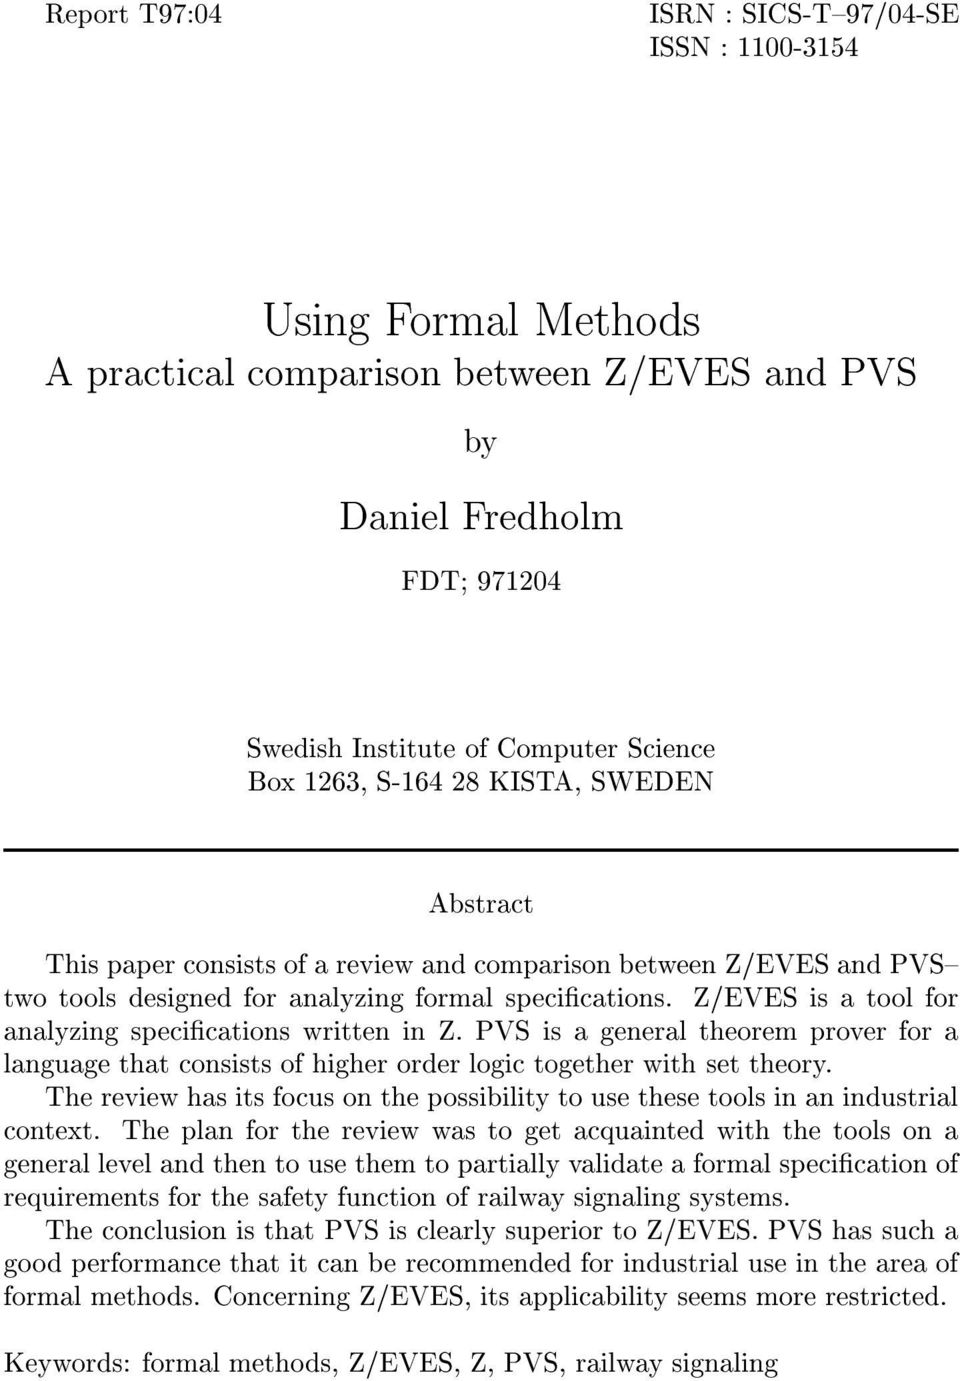 Z/EVES is a tool for analyzing specications written in Z. PVS is a general theorem prover for a language that consists of higher order logic together with set theory.